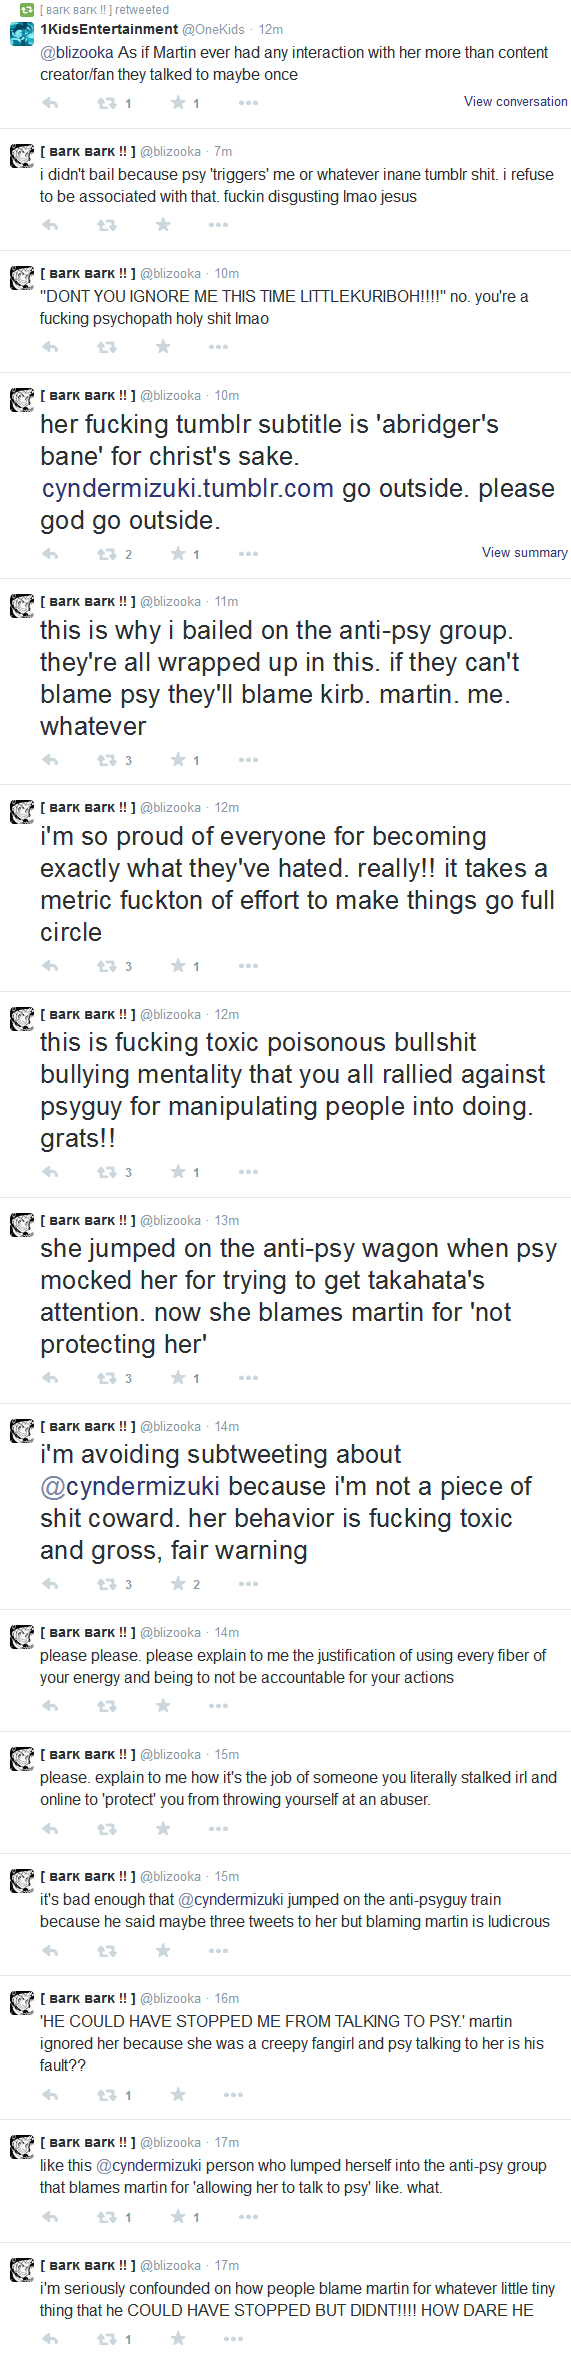 Archives of @blizooka and @superwavebeam's Abuse Towards Me